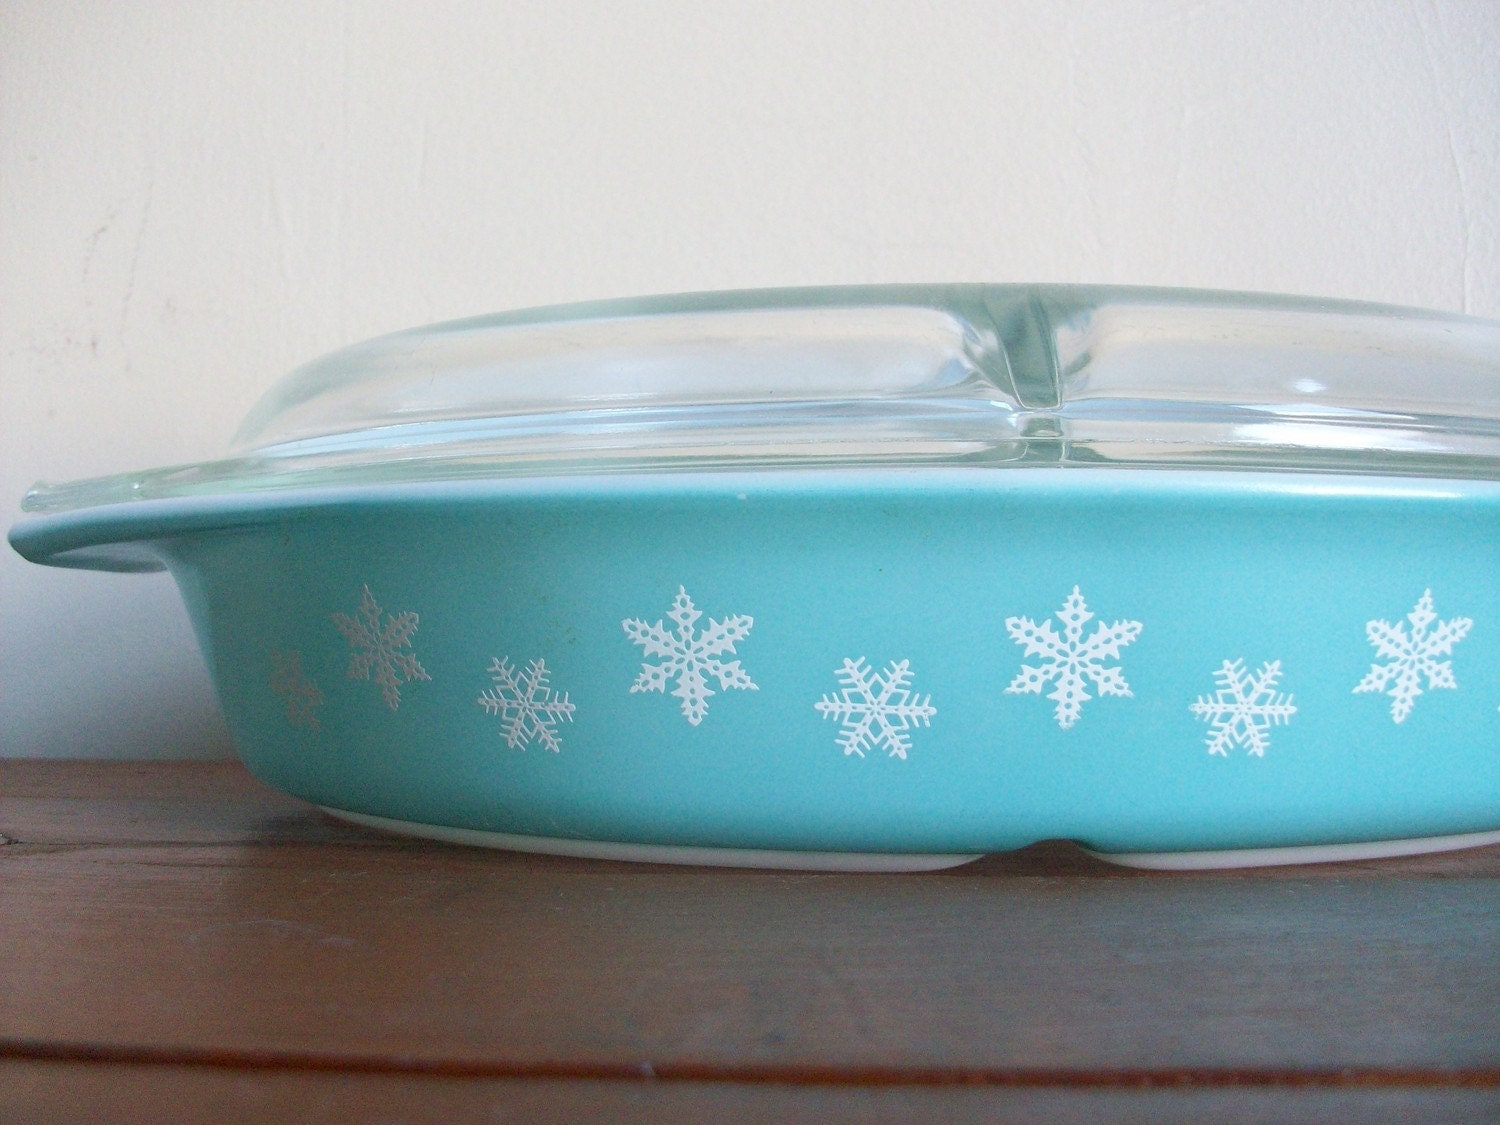 vintage midcentury 1956 snowflake pattern sectioned pyrex casserole dish